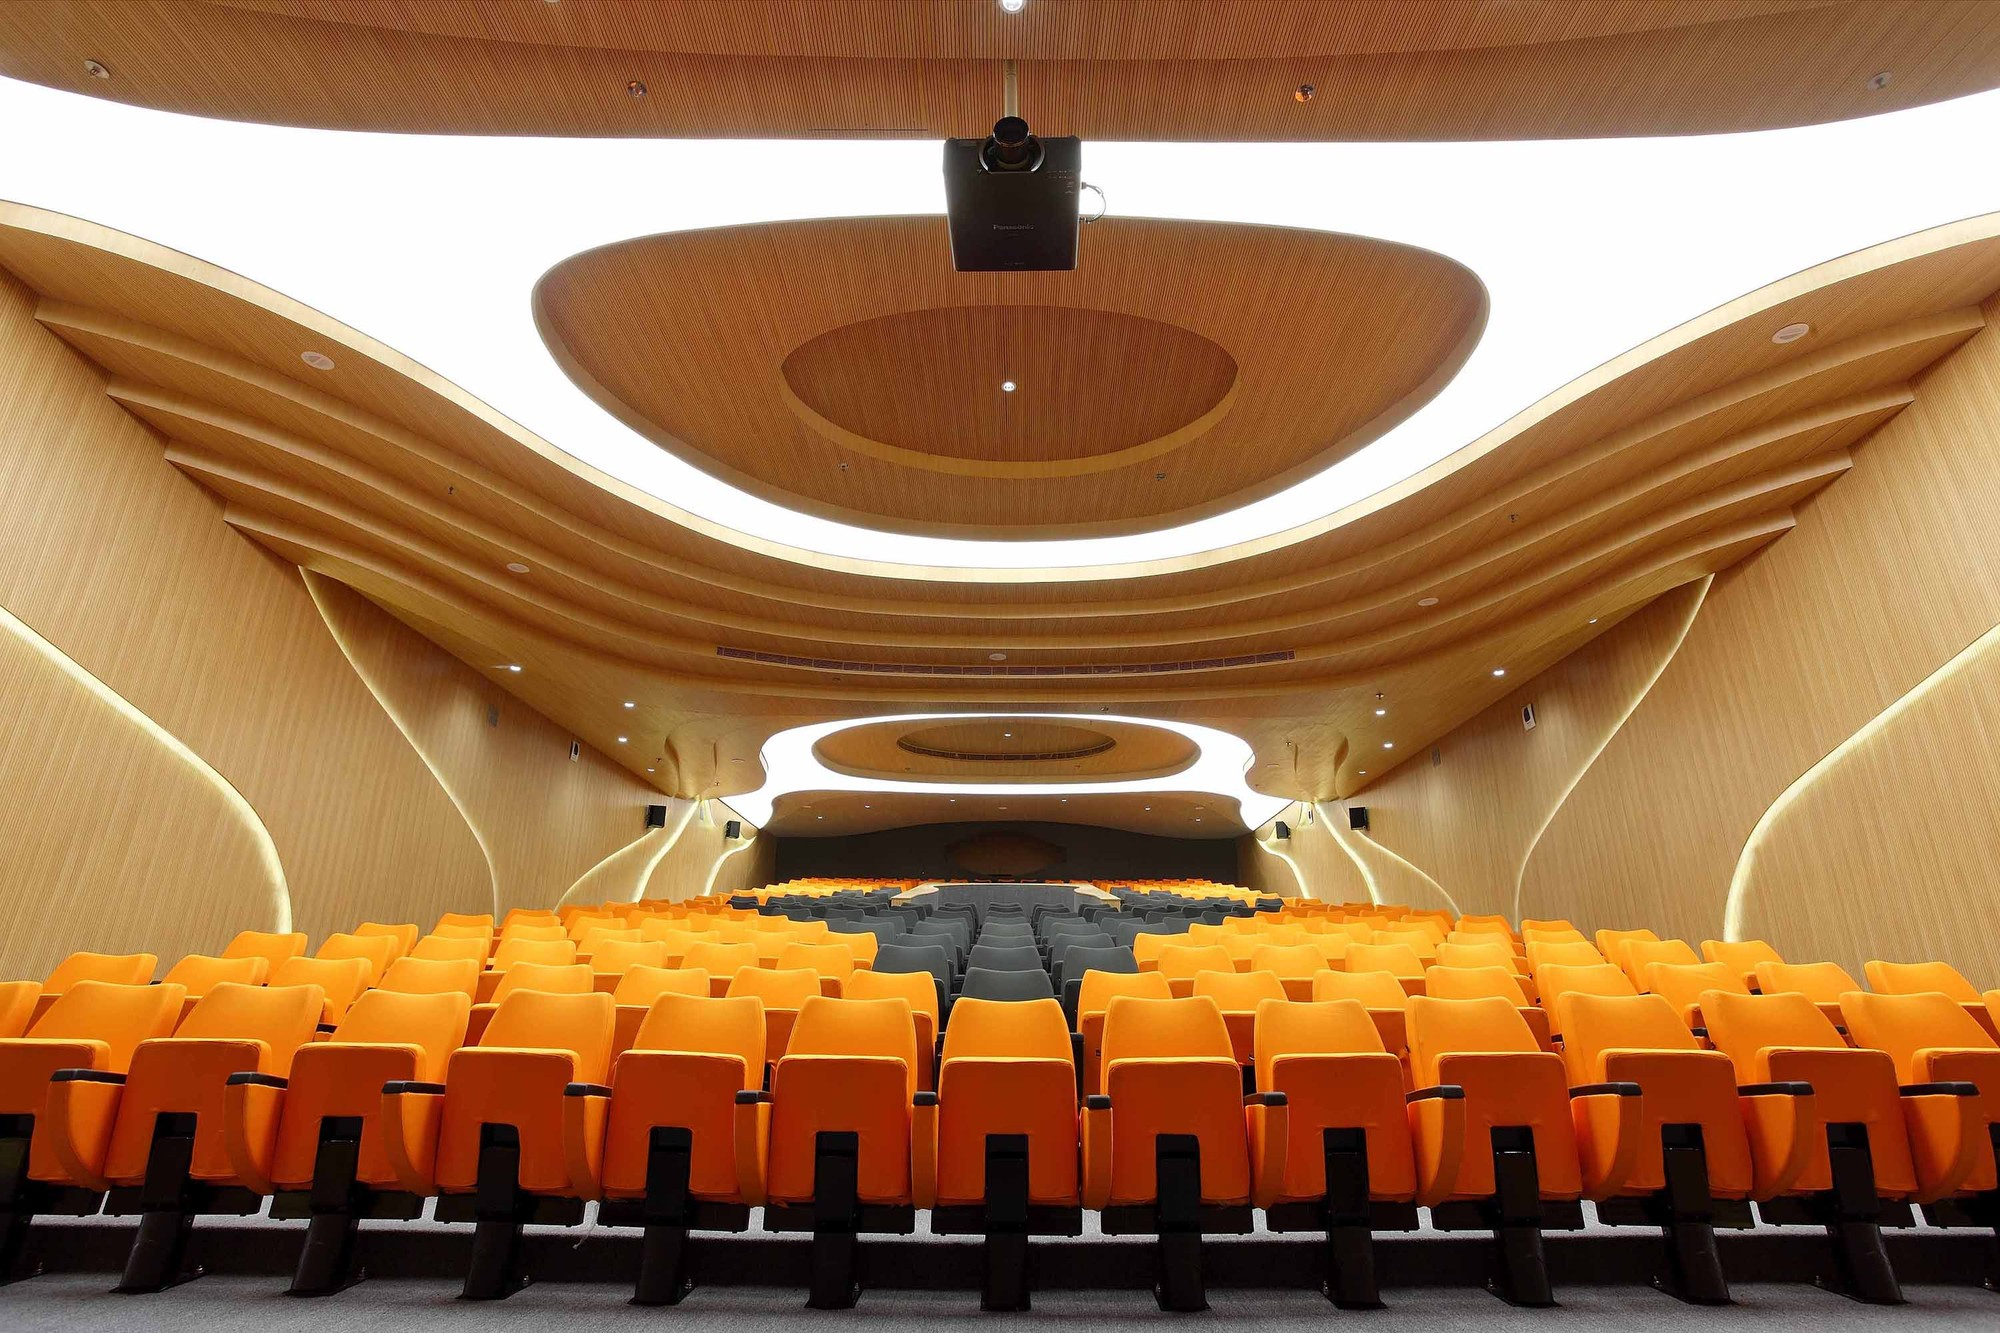 M auditorium planet 3 studios architecture archdaily for Architecture design